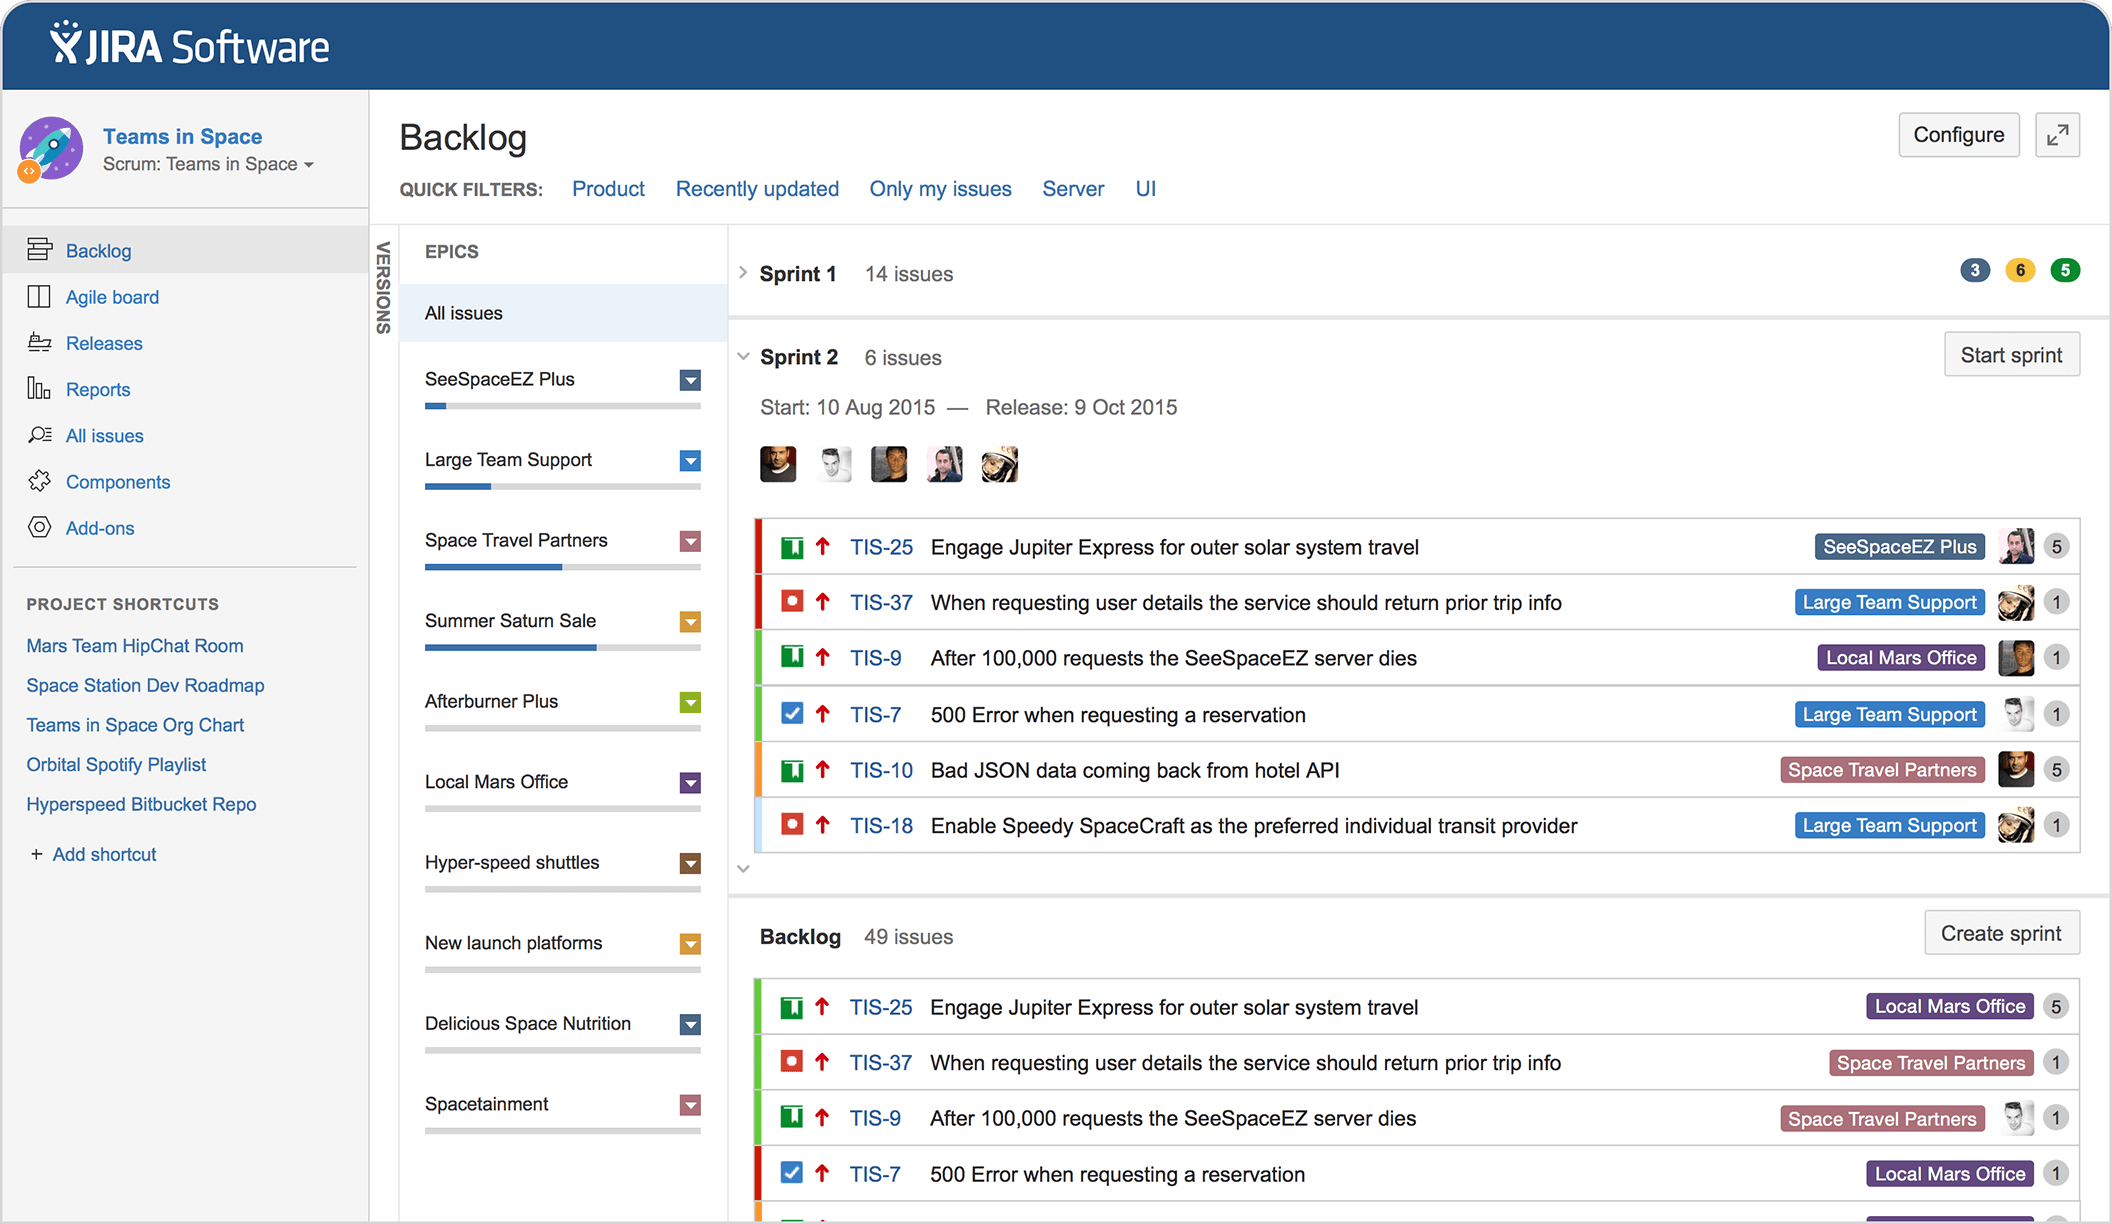 JIRA SOFTWARE DASHBOARD